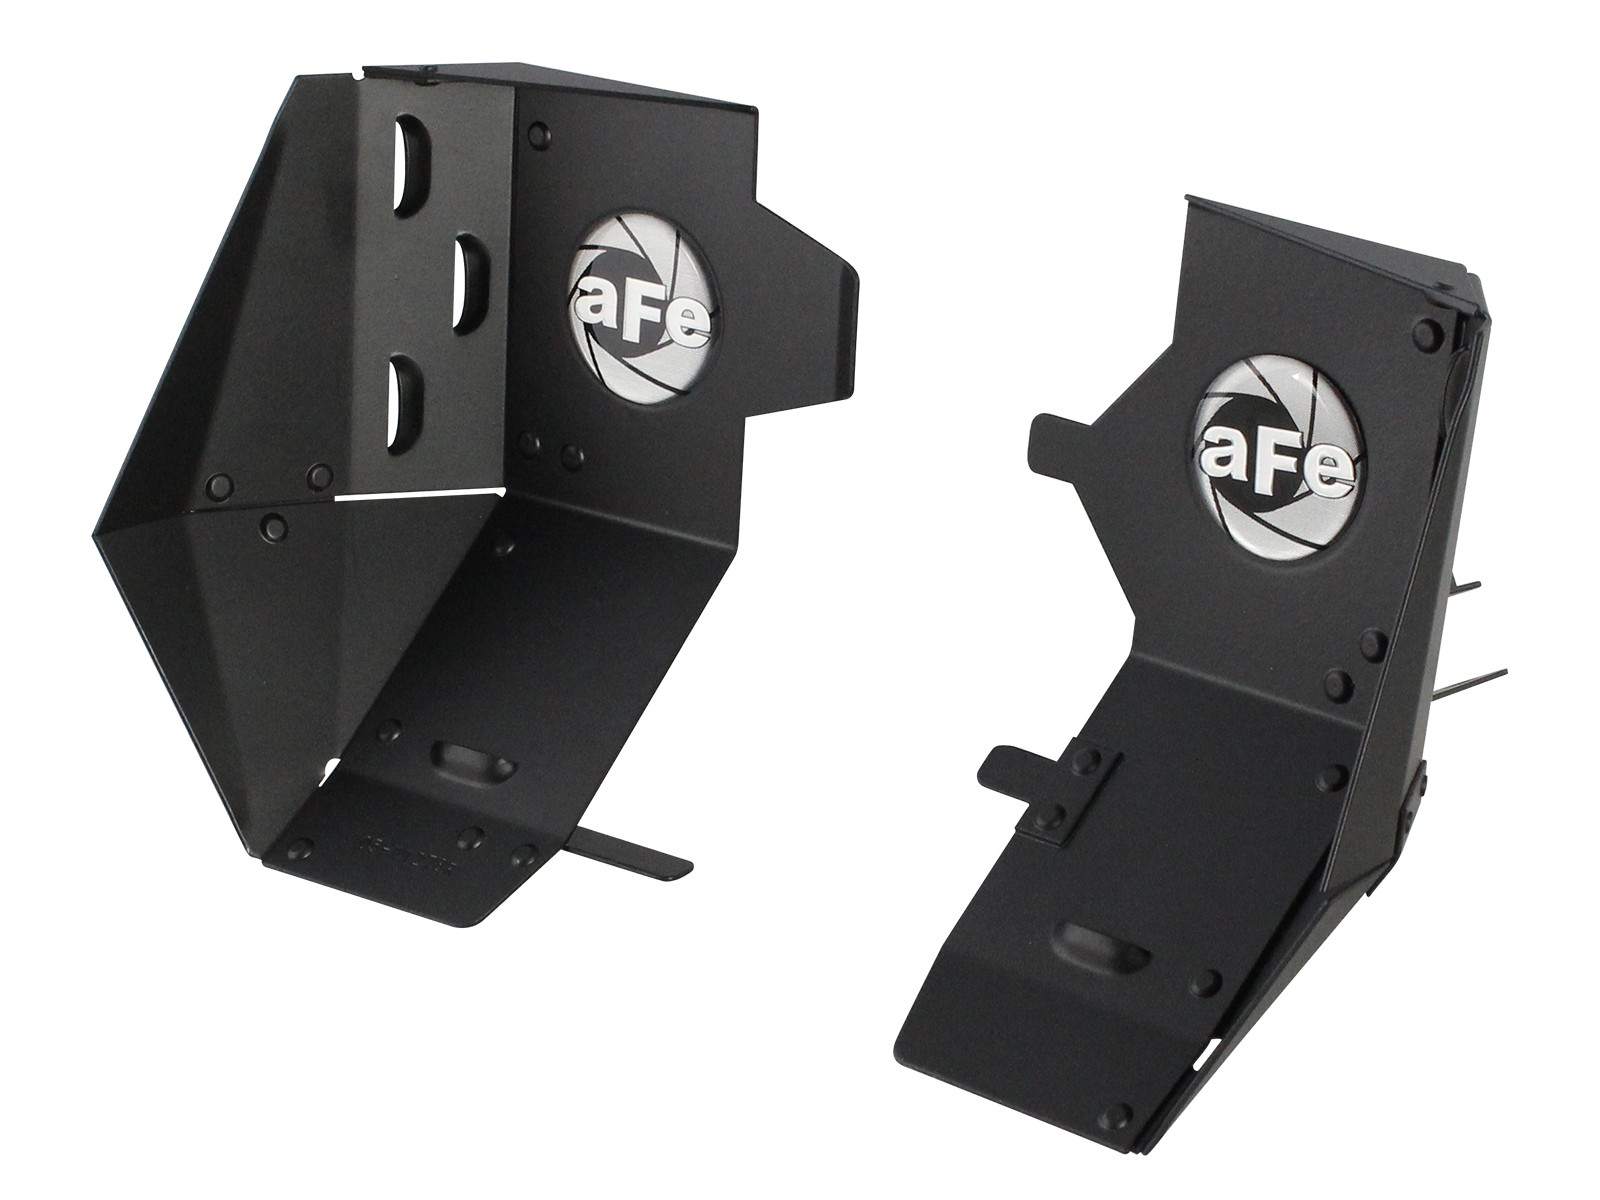 aFe POWER 54-11278 Magnum FORCE Intake System Dynamic Air Scoops